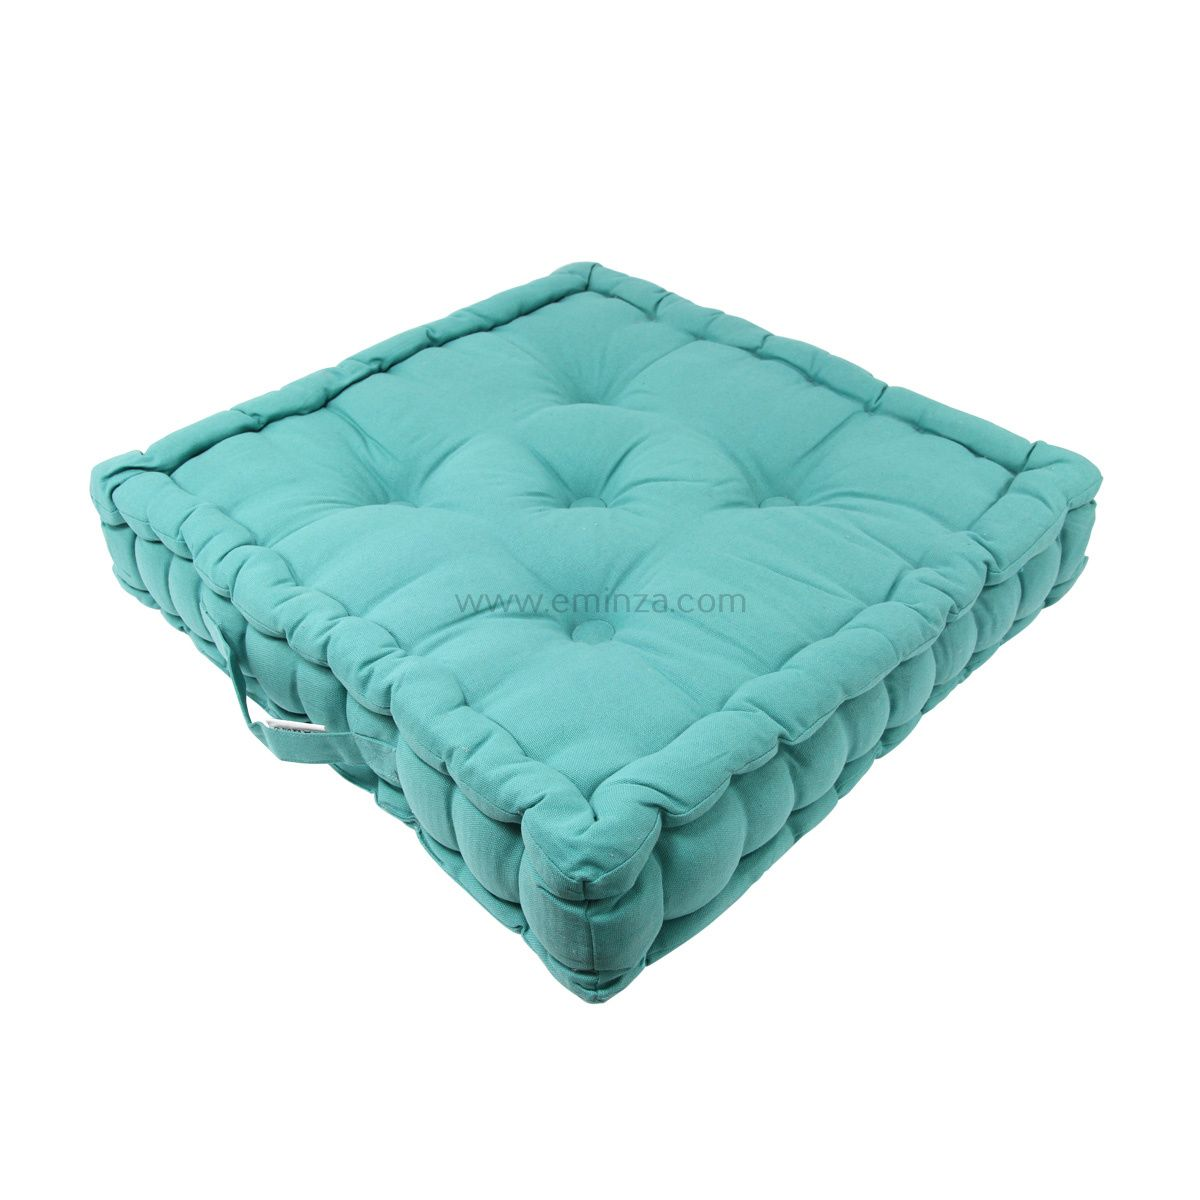 coussin de sol 50 cm etna bleu caraibe coussin de sol et pouf eminza. Black Bedroom Furniture Sets. Home Design Ideas